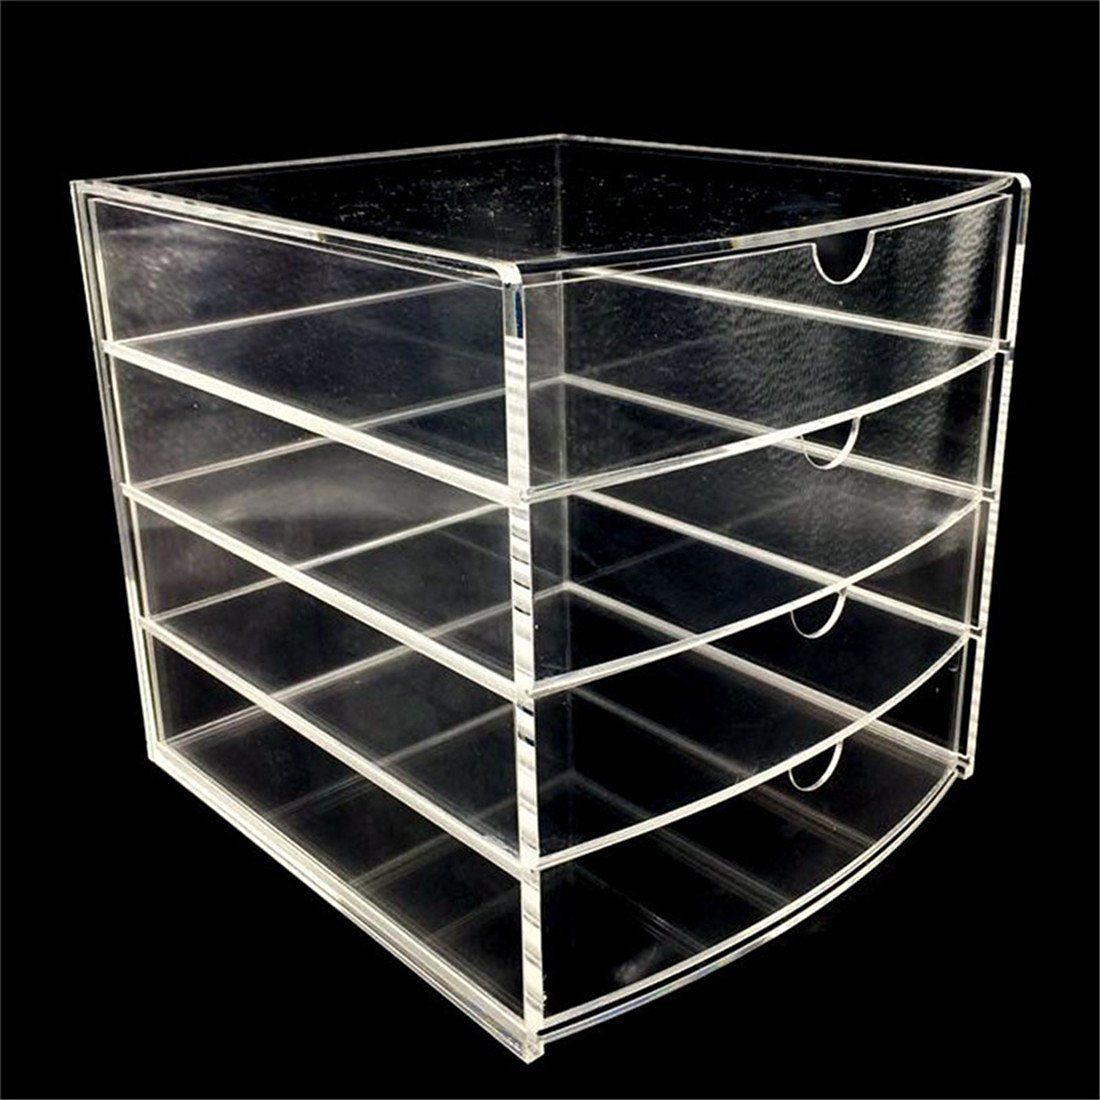 Immi Living Cosmetic Organizer Acrylic Makeup Case Drawers Box Jewelry Storage Clear Cabinet Amazon Ca Home Kitchen Jewelry Organizer Storage